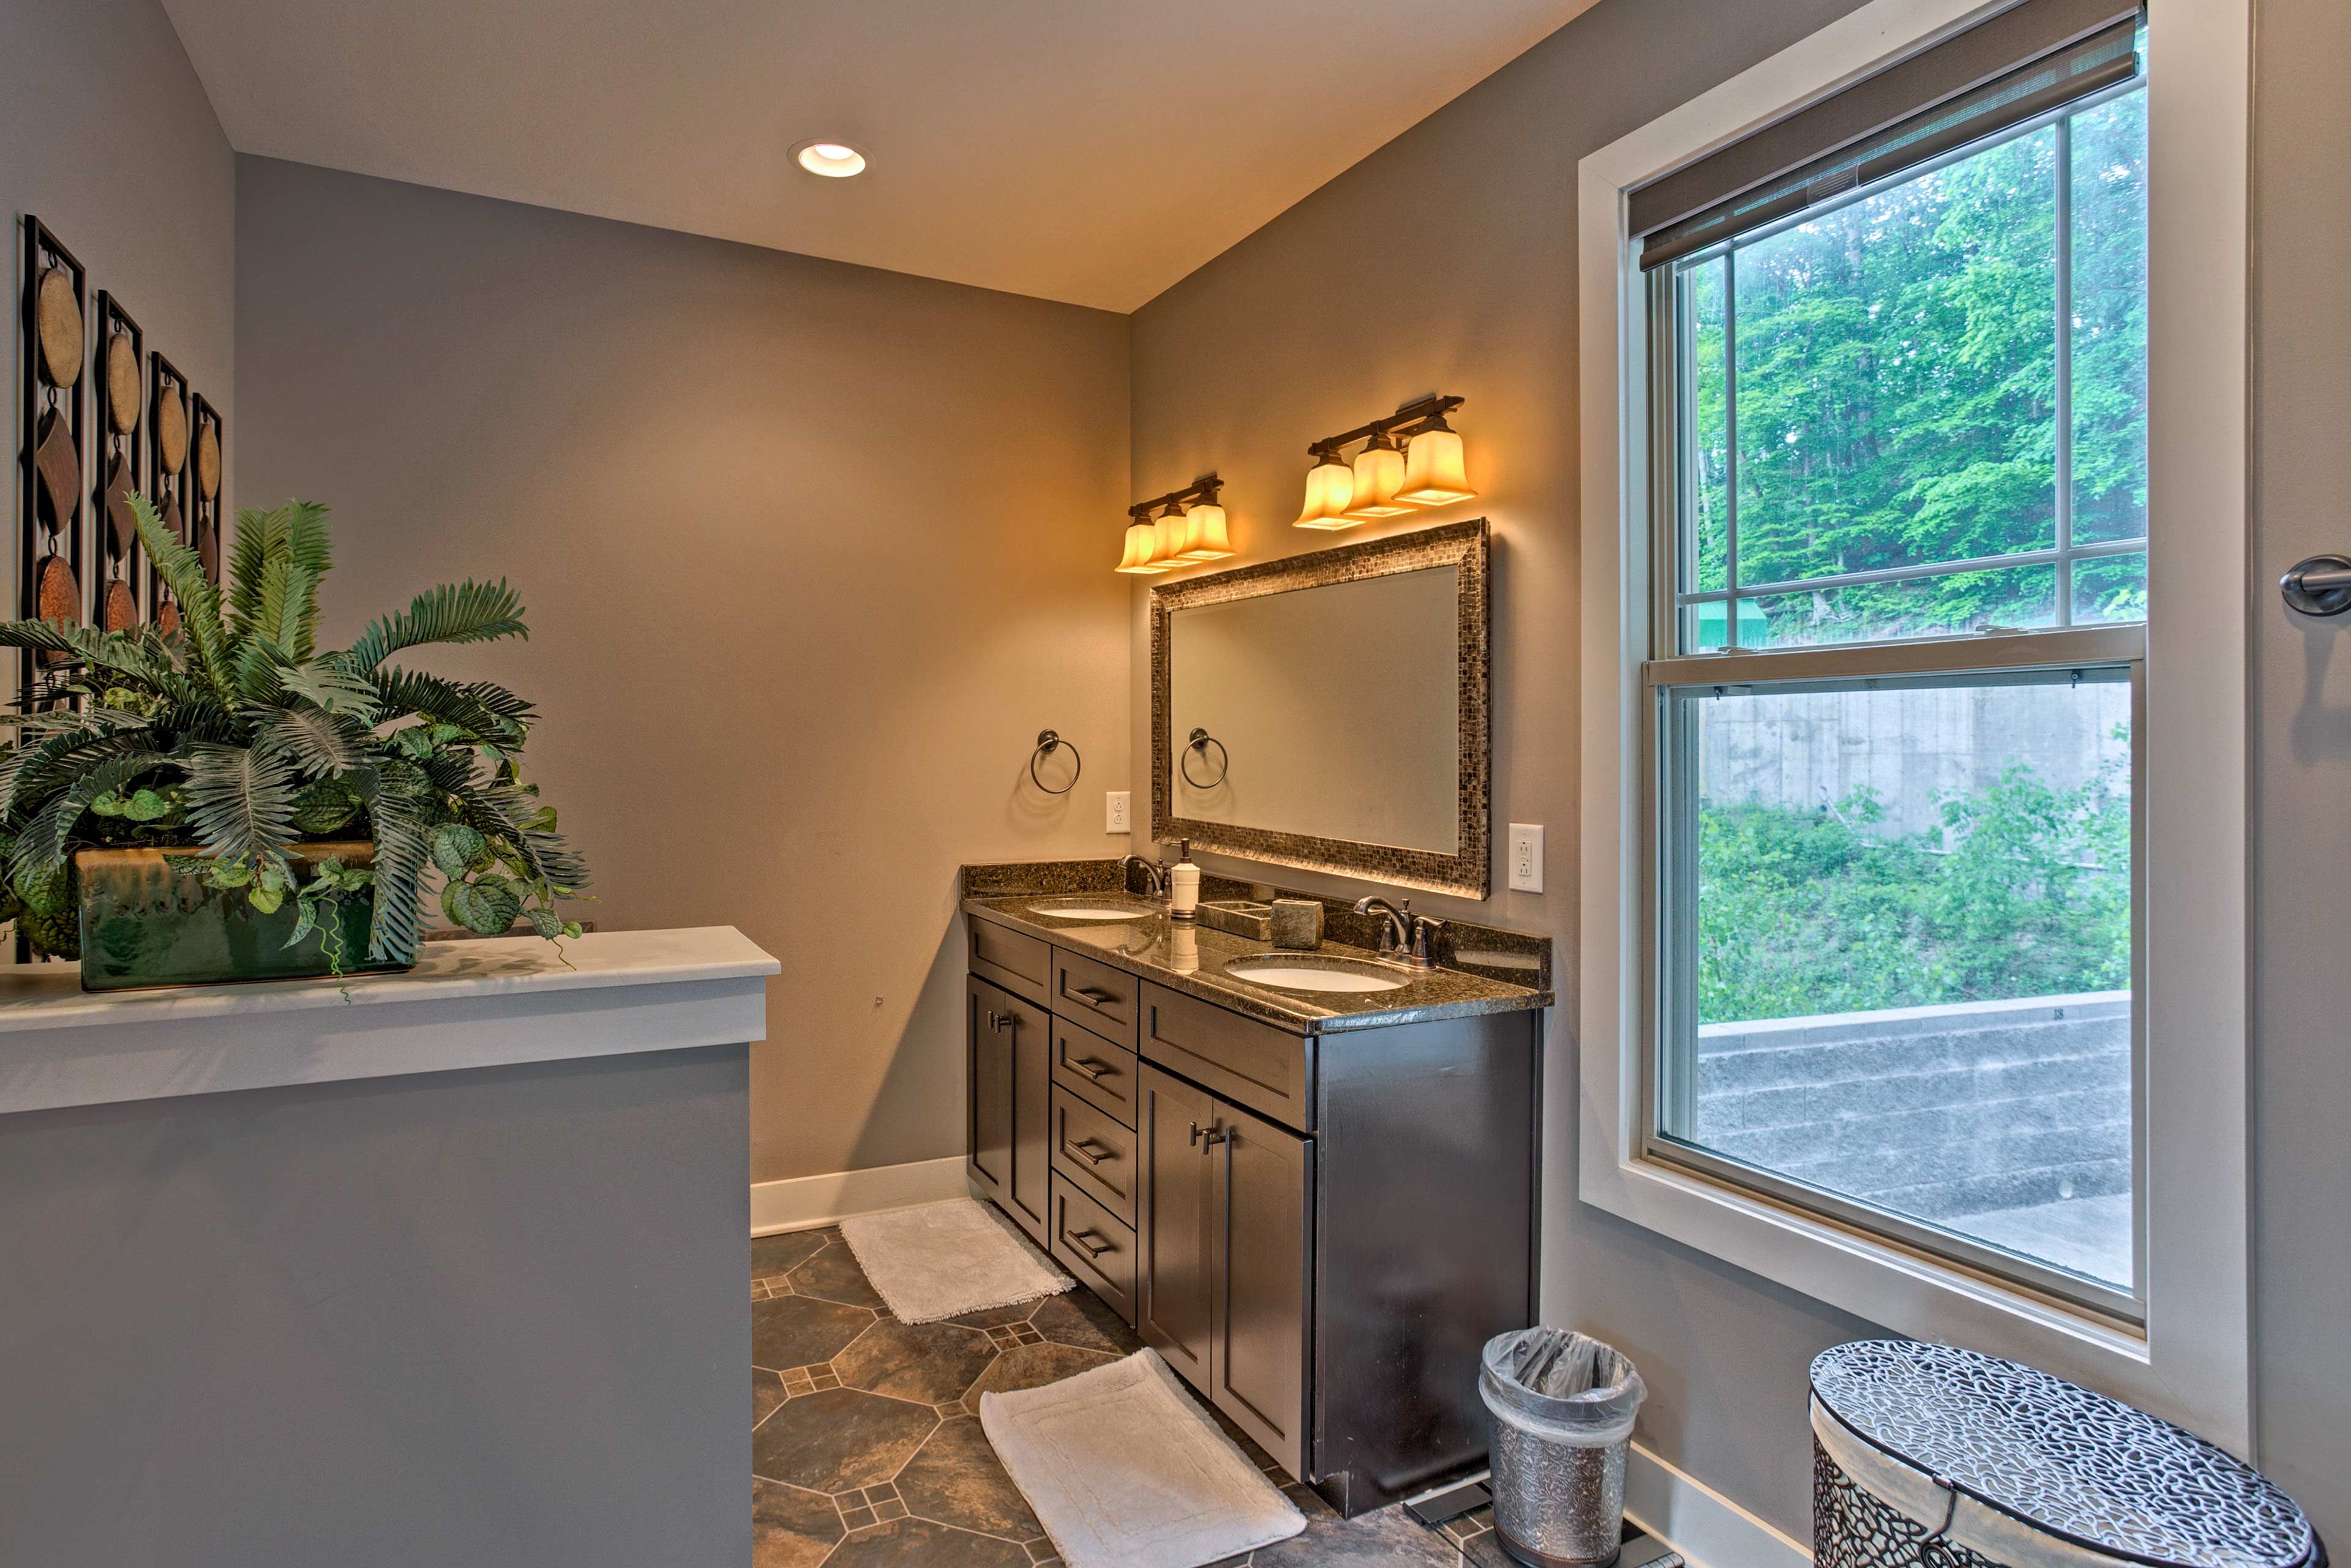 Conveniently utilize the his-and-hers sinks while getting ready!